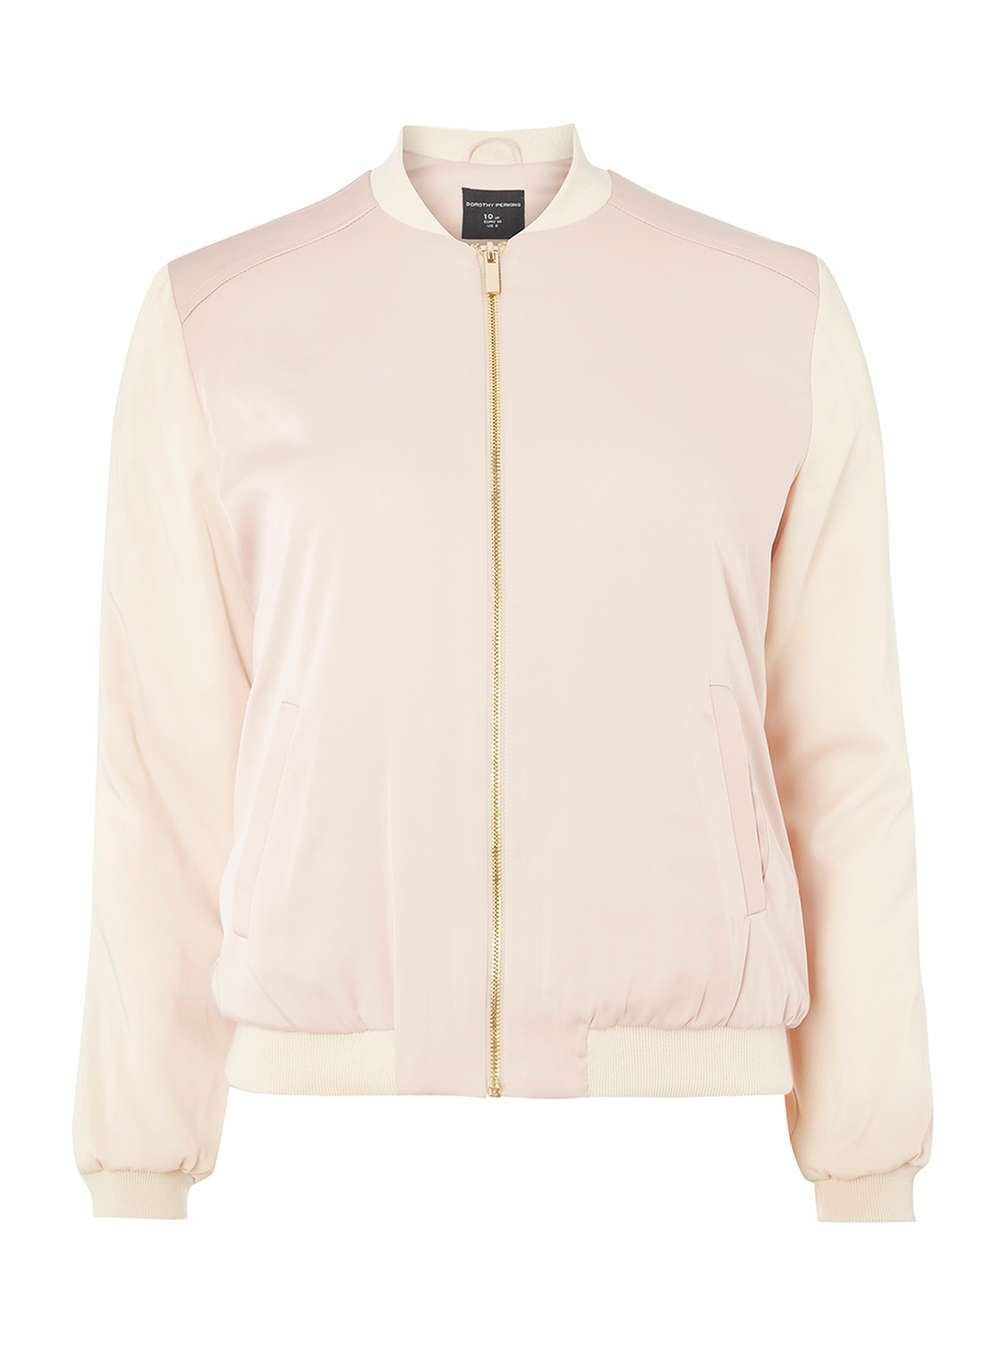 Womens Pink Colourblock Bomber Jacket Pink - pattern: plain; collar: round collar/collarless; style: bomber; predominant colour: blush; occasions: casual; length: standard; fit: tailored/fitted; fibres: polyester/polyamide - stretch; sleeve length: long sleeve; sleeve style: standard; collar break: high; pattern type: fabric; texture group: woven light midweight; wardrobe: basic; season: a/w 2016